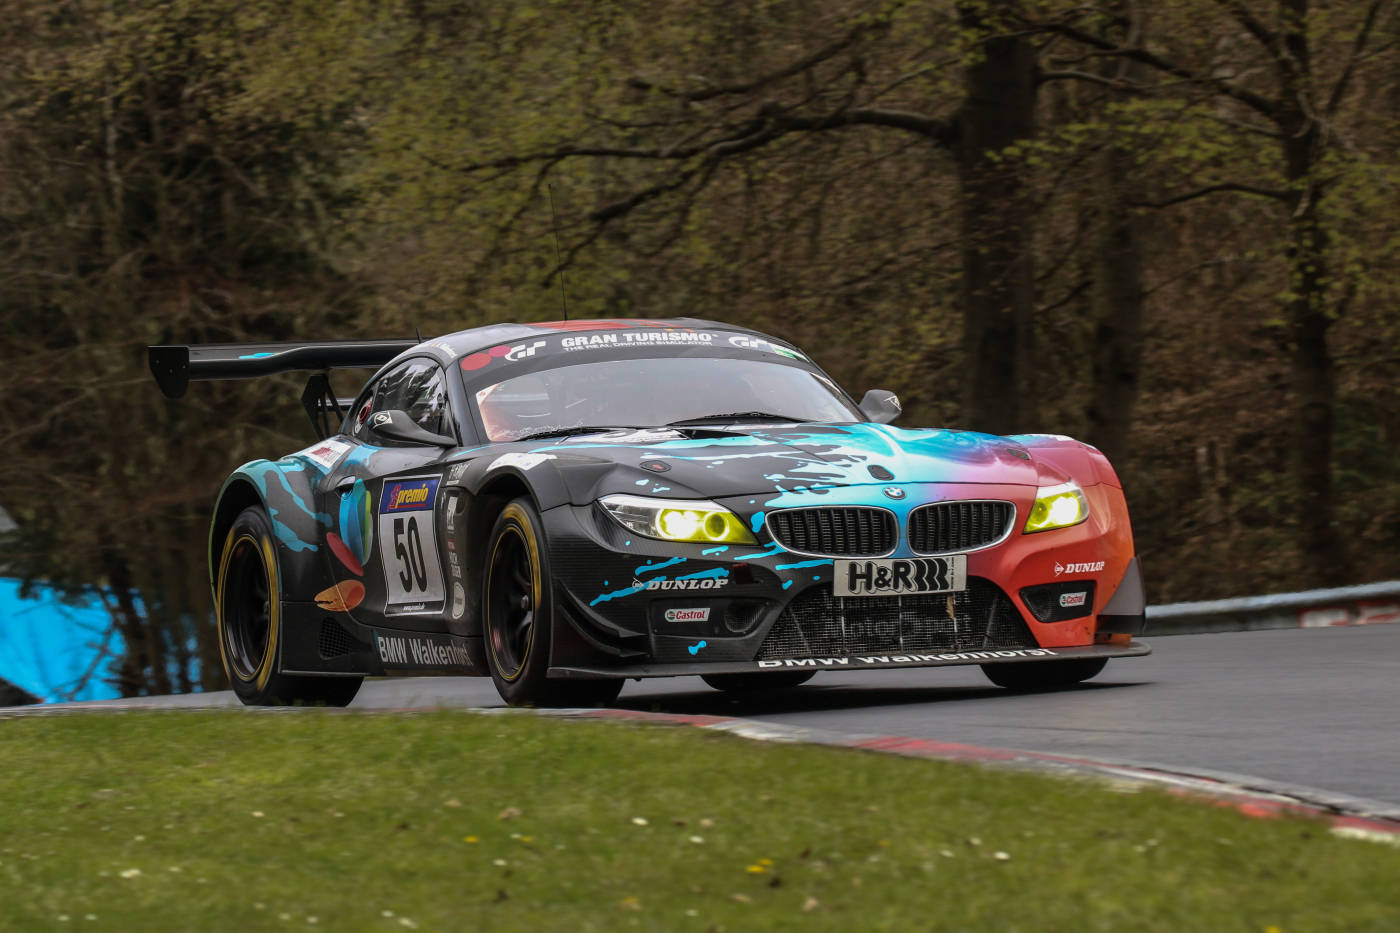 Bmw Z4 Gt3 Bimmertoday Gallery Bimmertoday Gallery Bimmertoday Gallery Car Images Of 2018